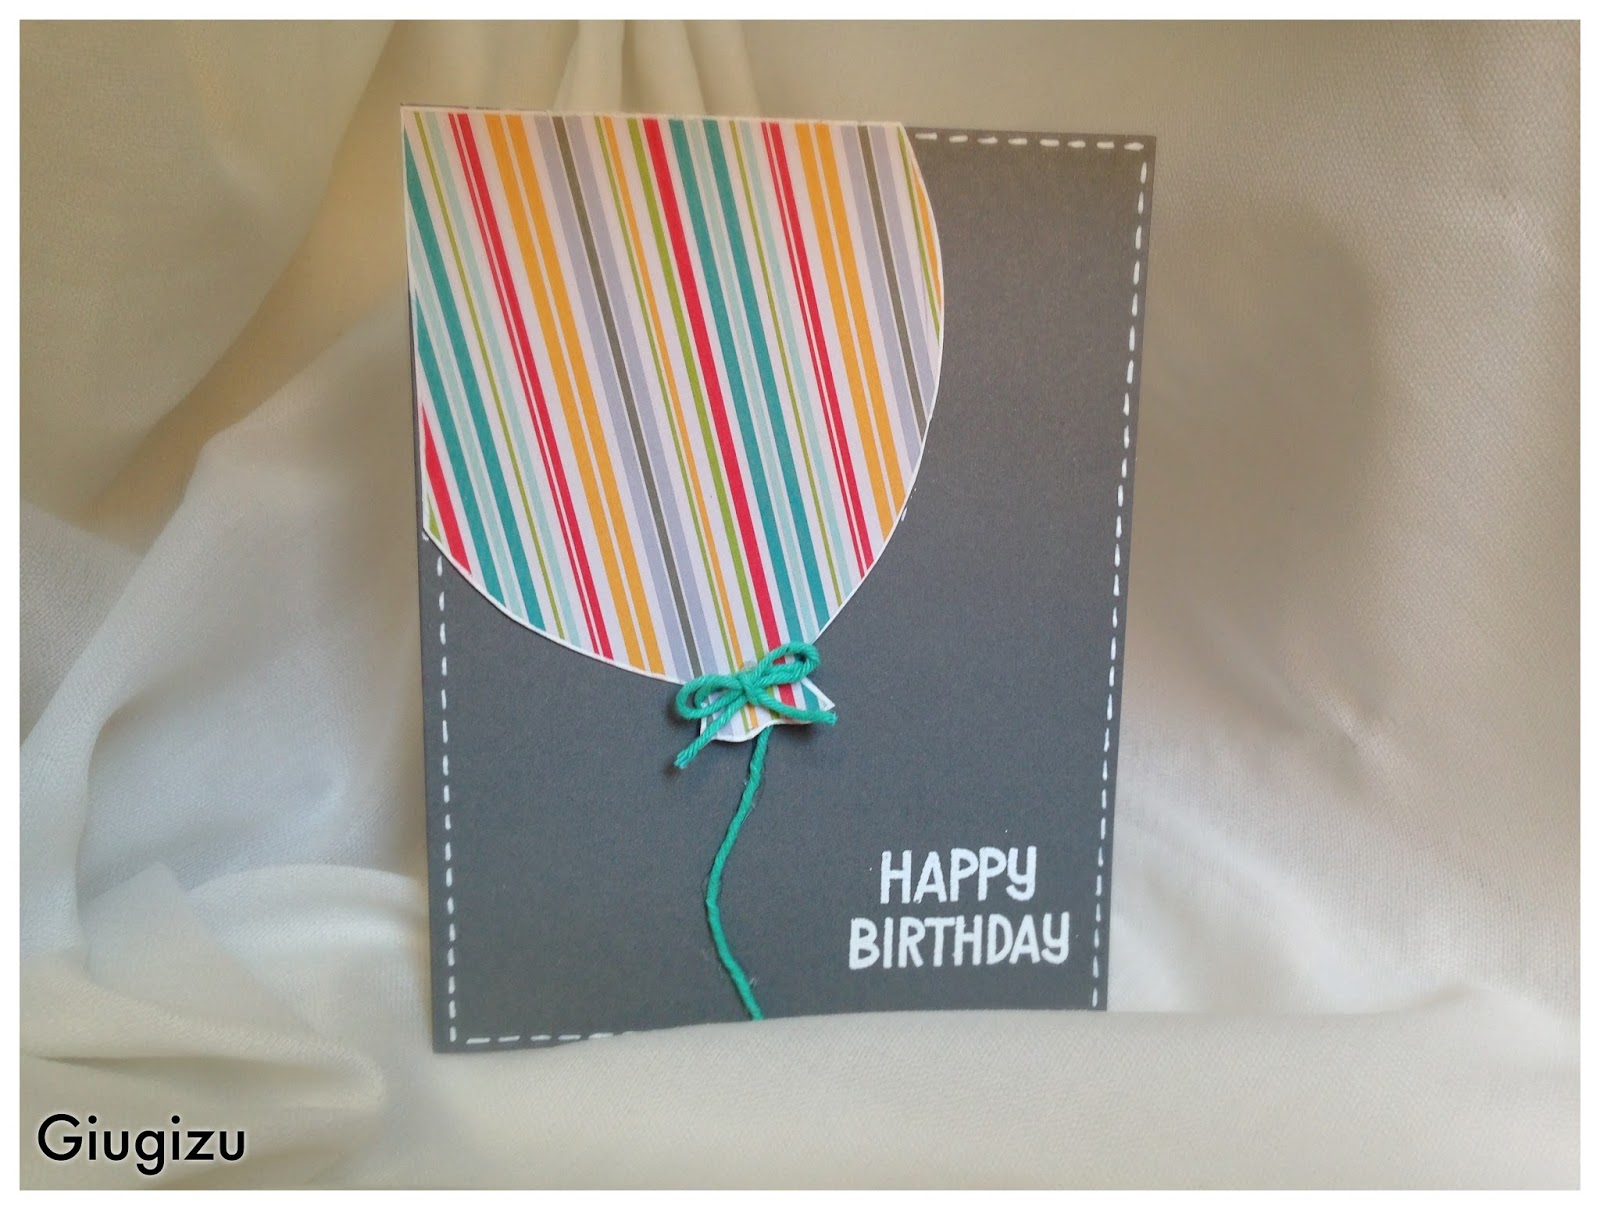 Super Giugizu's corner: Handmade Flying Balloon birthday card  OE15